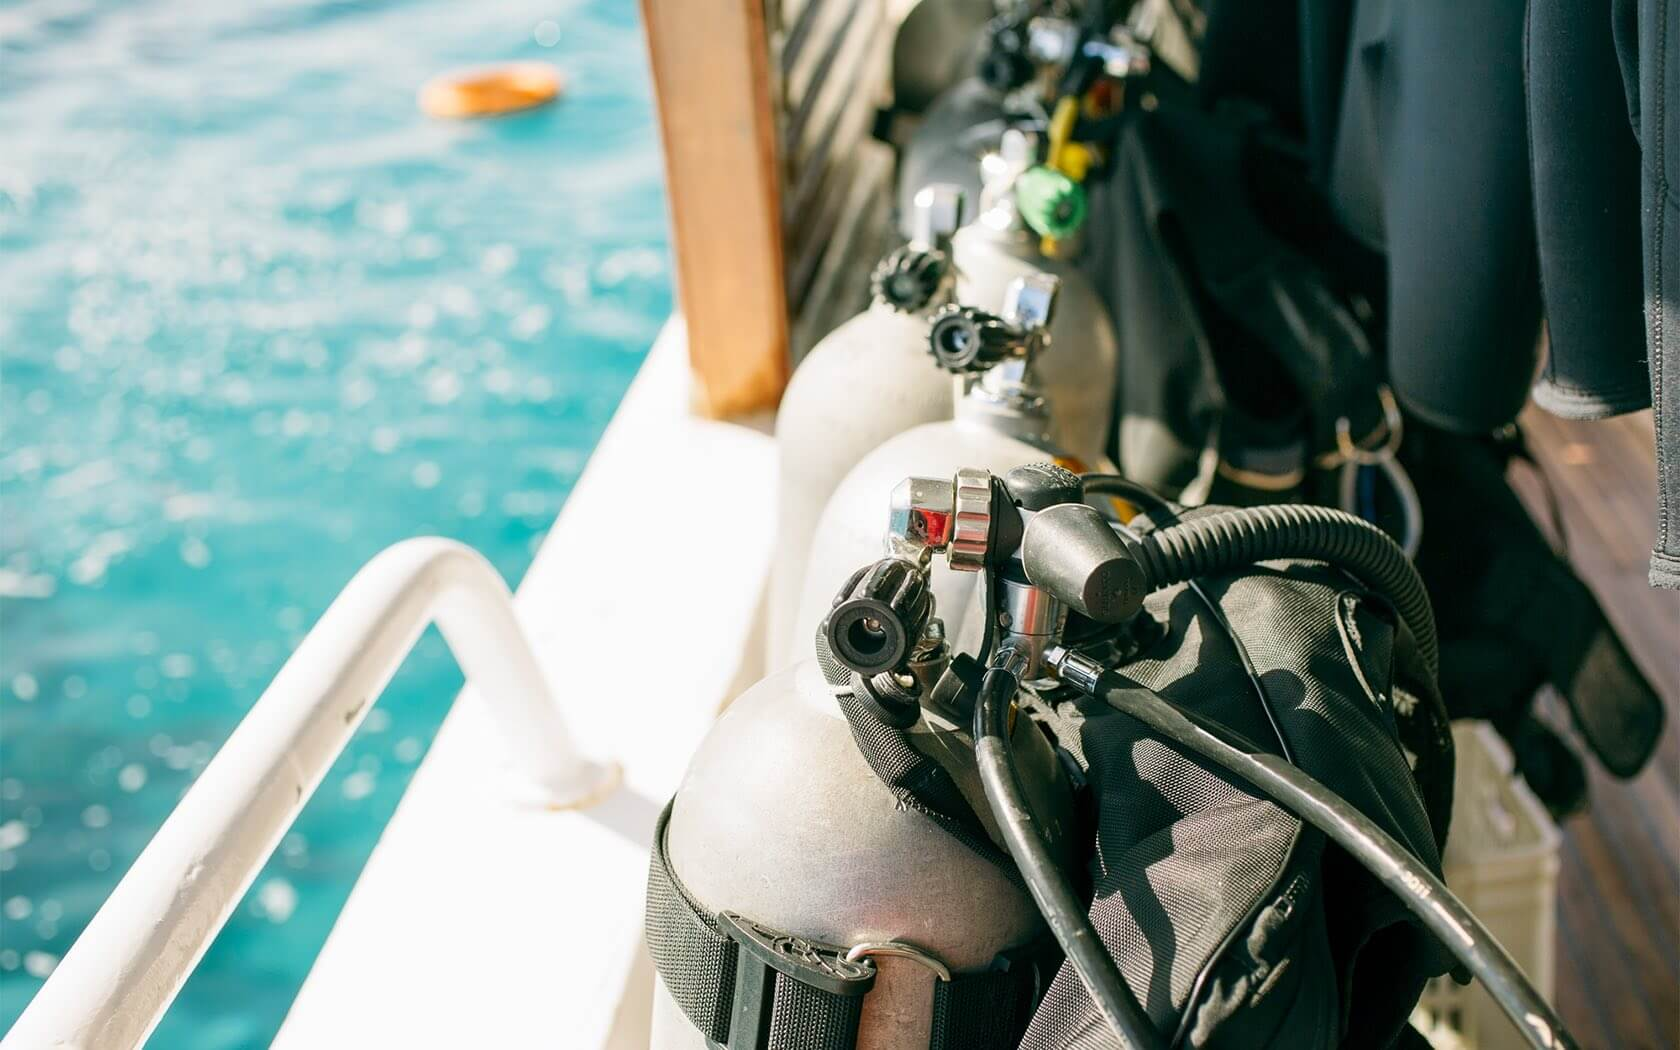 close up of two scuba diving tanks on a boat